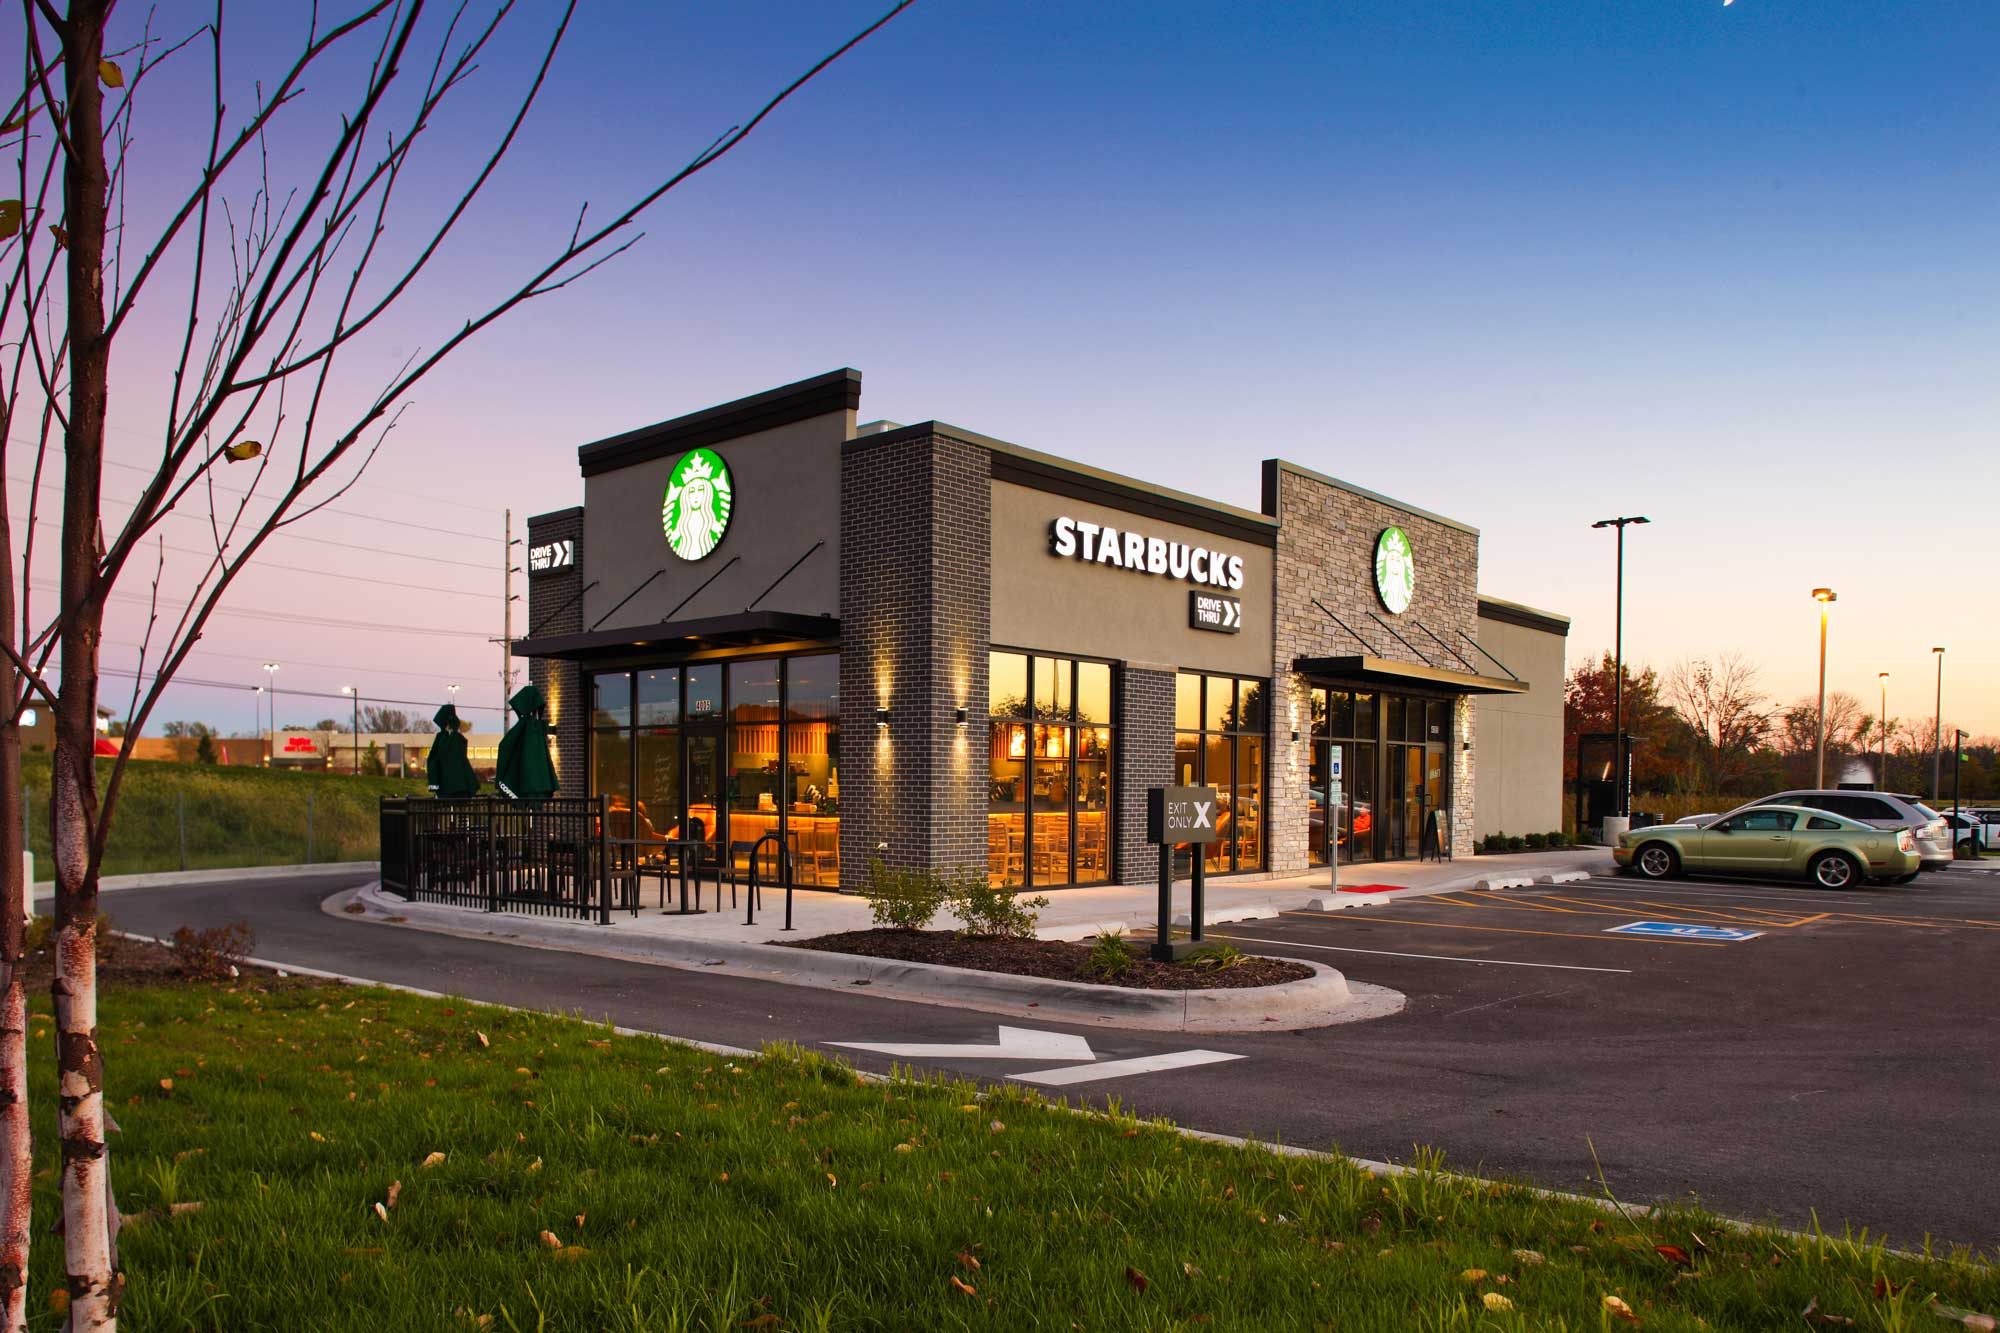 Feature of Starbucks built by Daxon Construction view 4